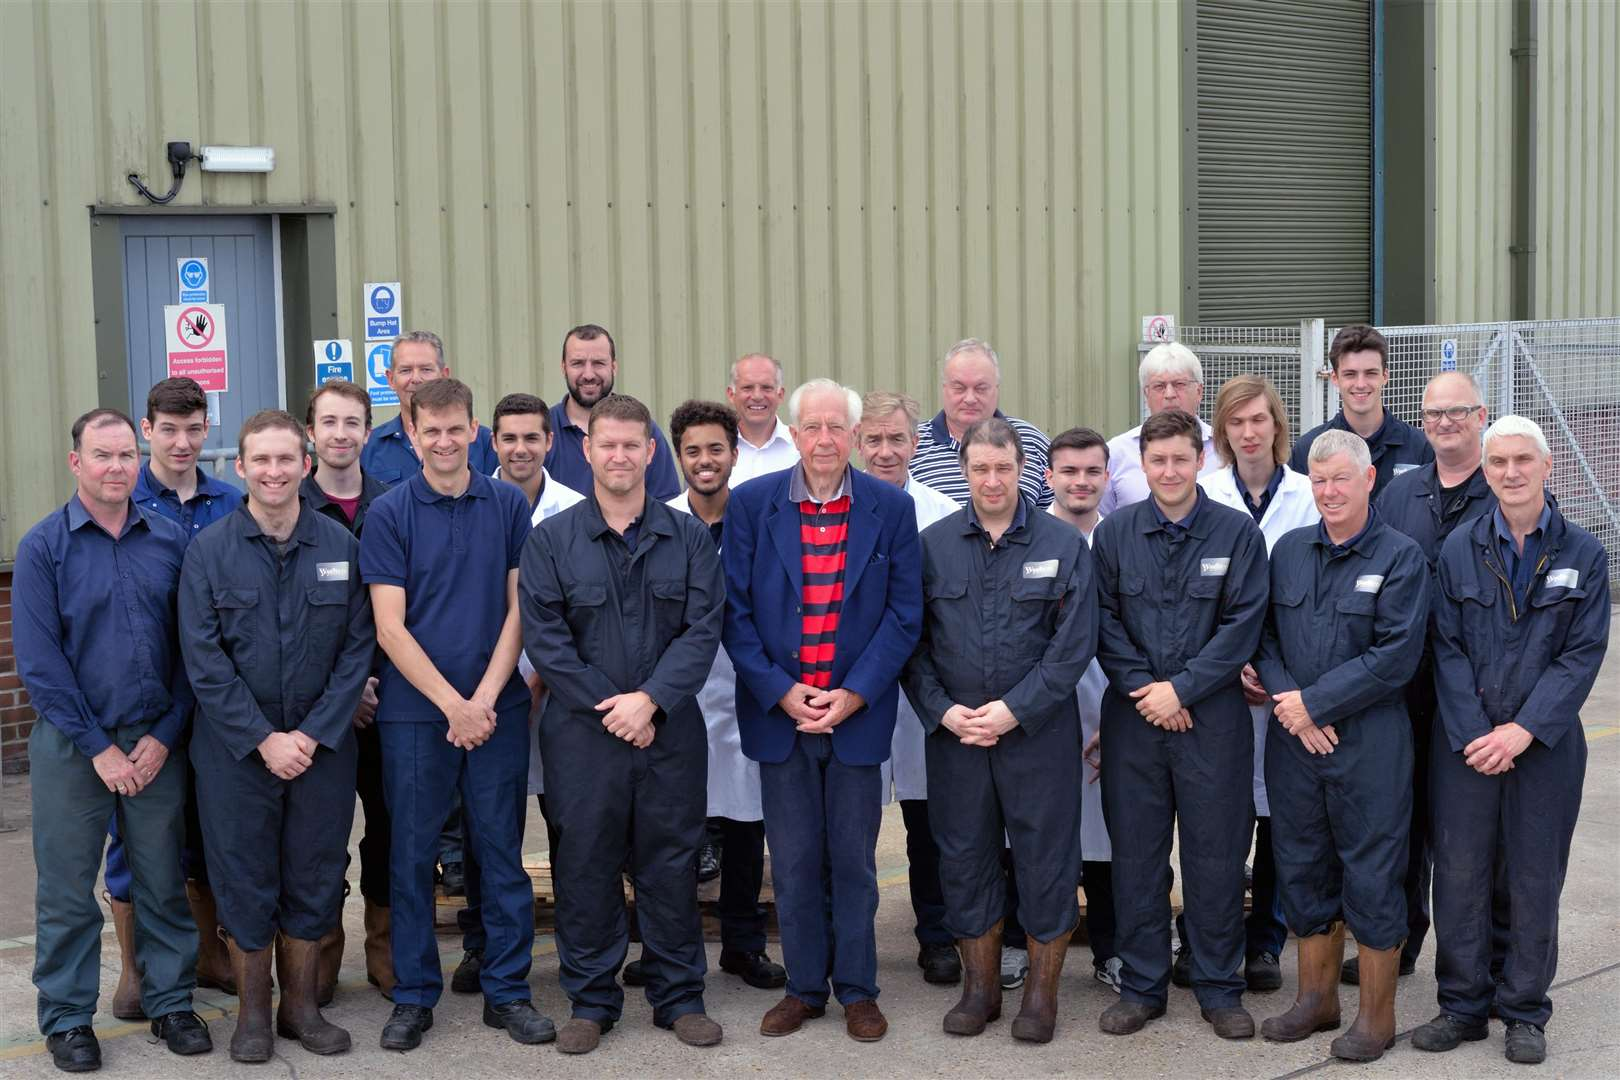 The staff at Wychem, which is celebrating its 50th anniversary this year. Among them is the business' founder Geoff Fuller, front centre (3254147)